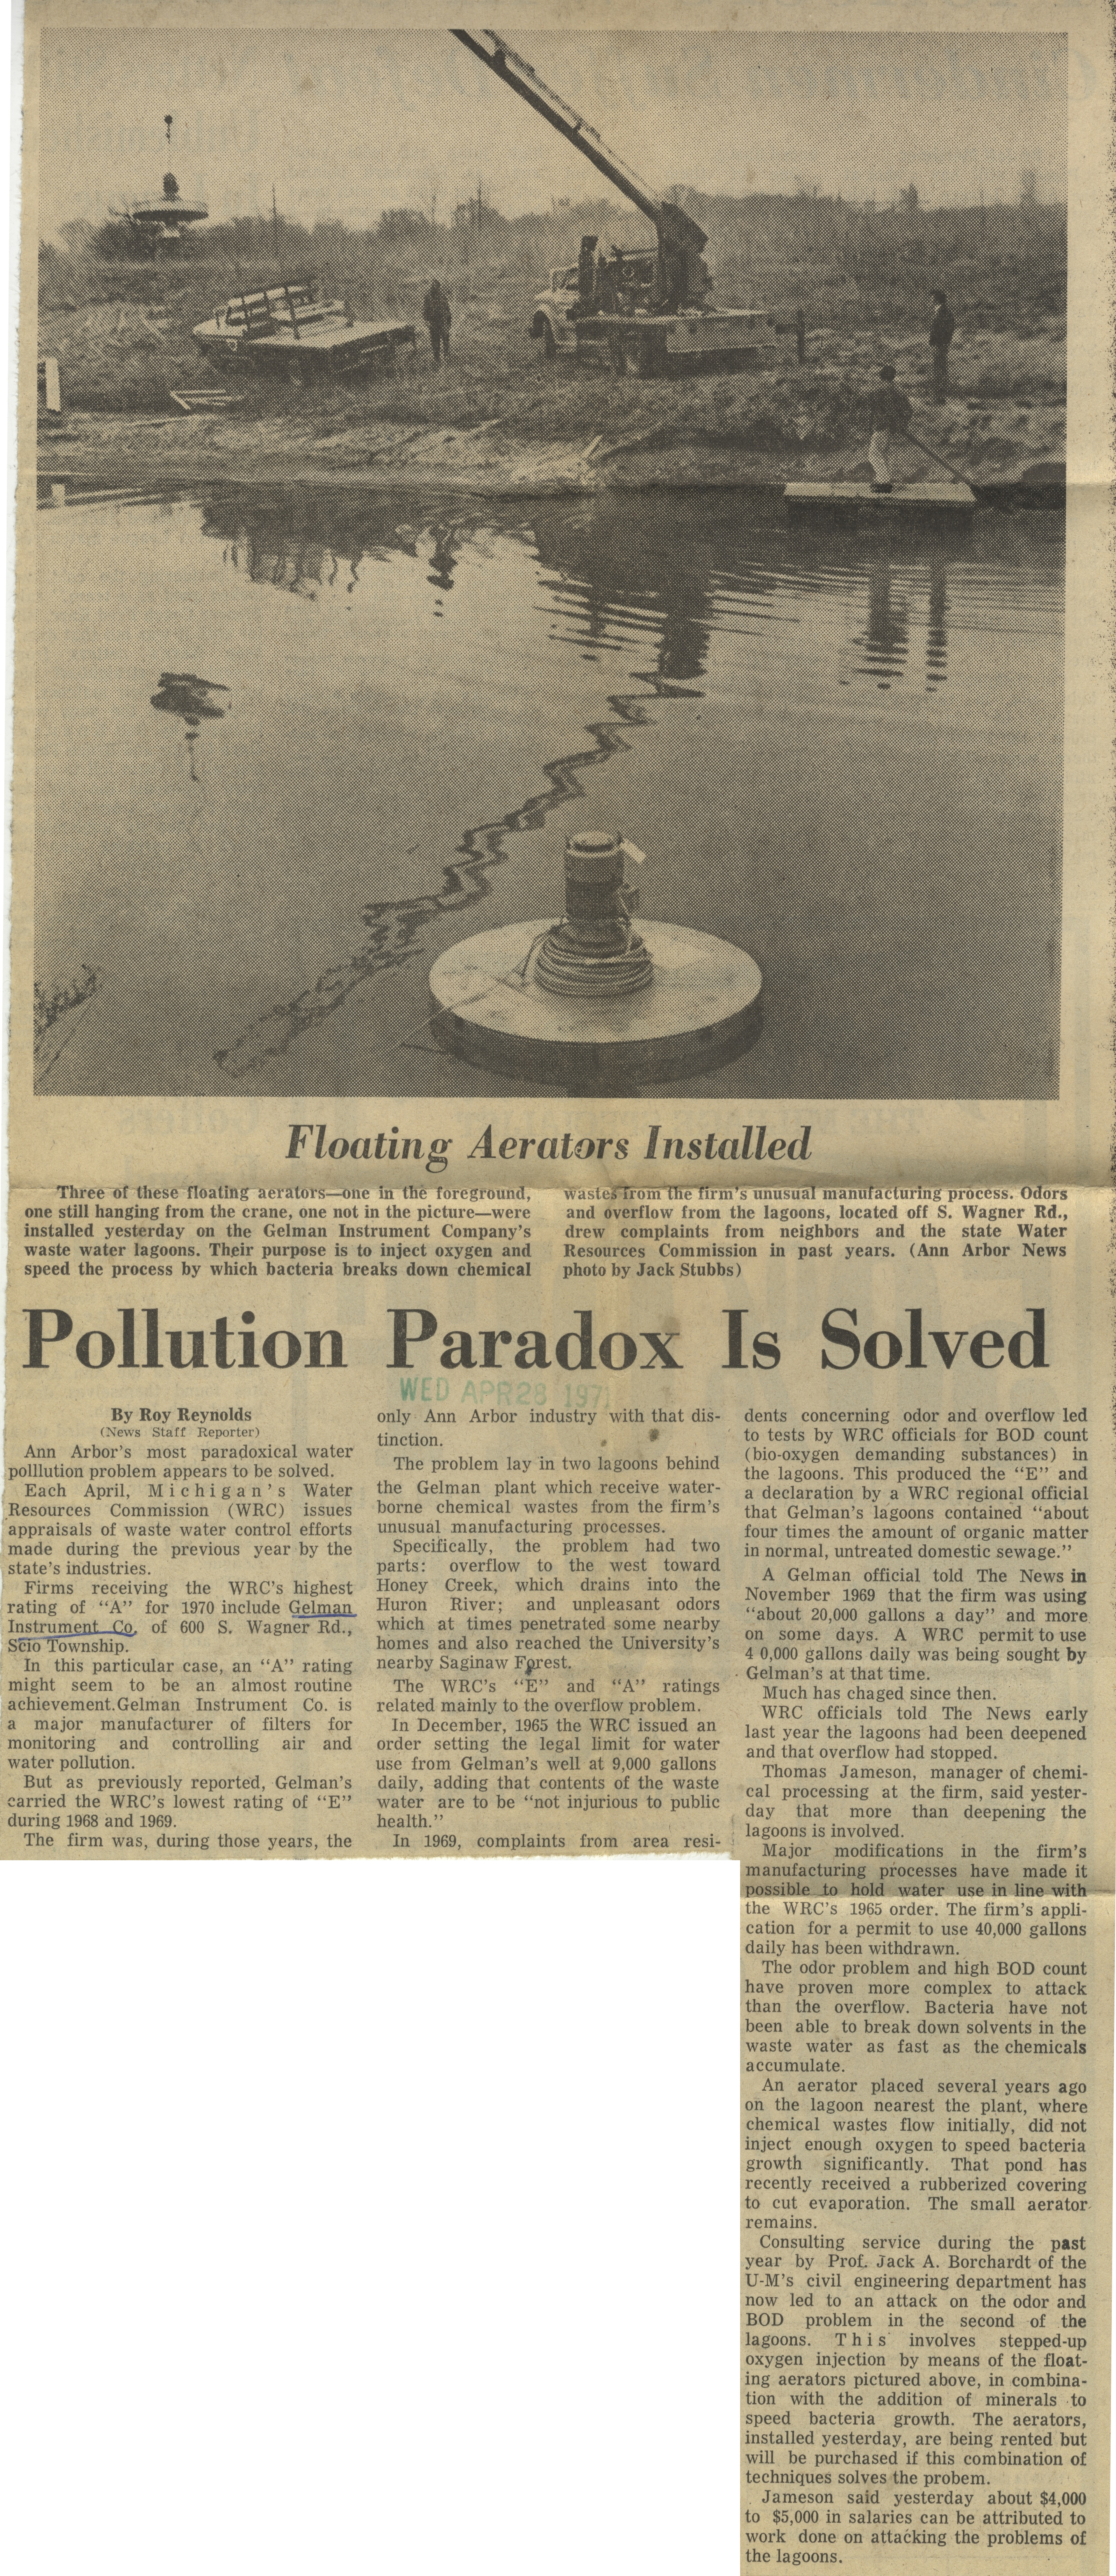 Pollution Paradox Is Solved image